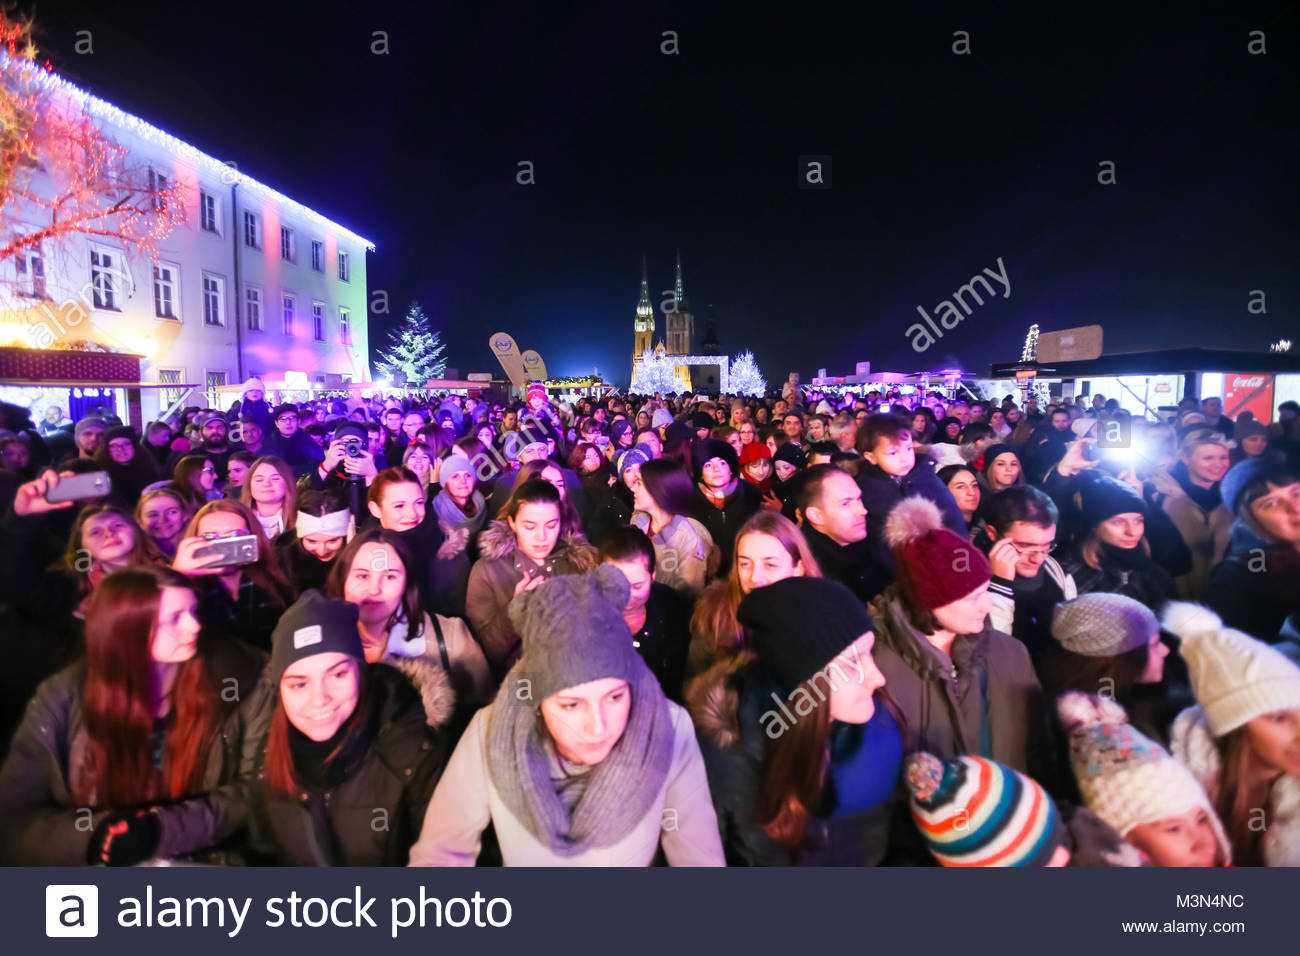 ZAGREB, CROATIA - DECEMBER 1th, 2016: Advent time in city center of Zagreb, Croatia. The audience at the famous Stock Photo